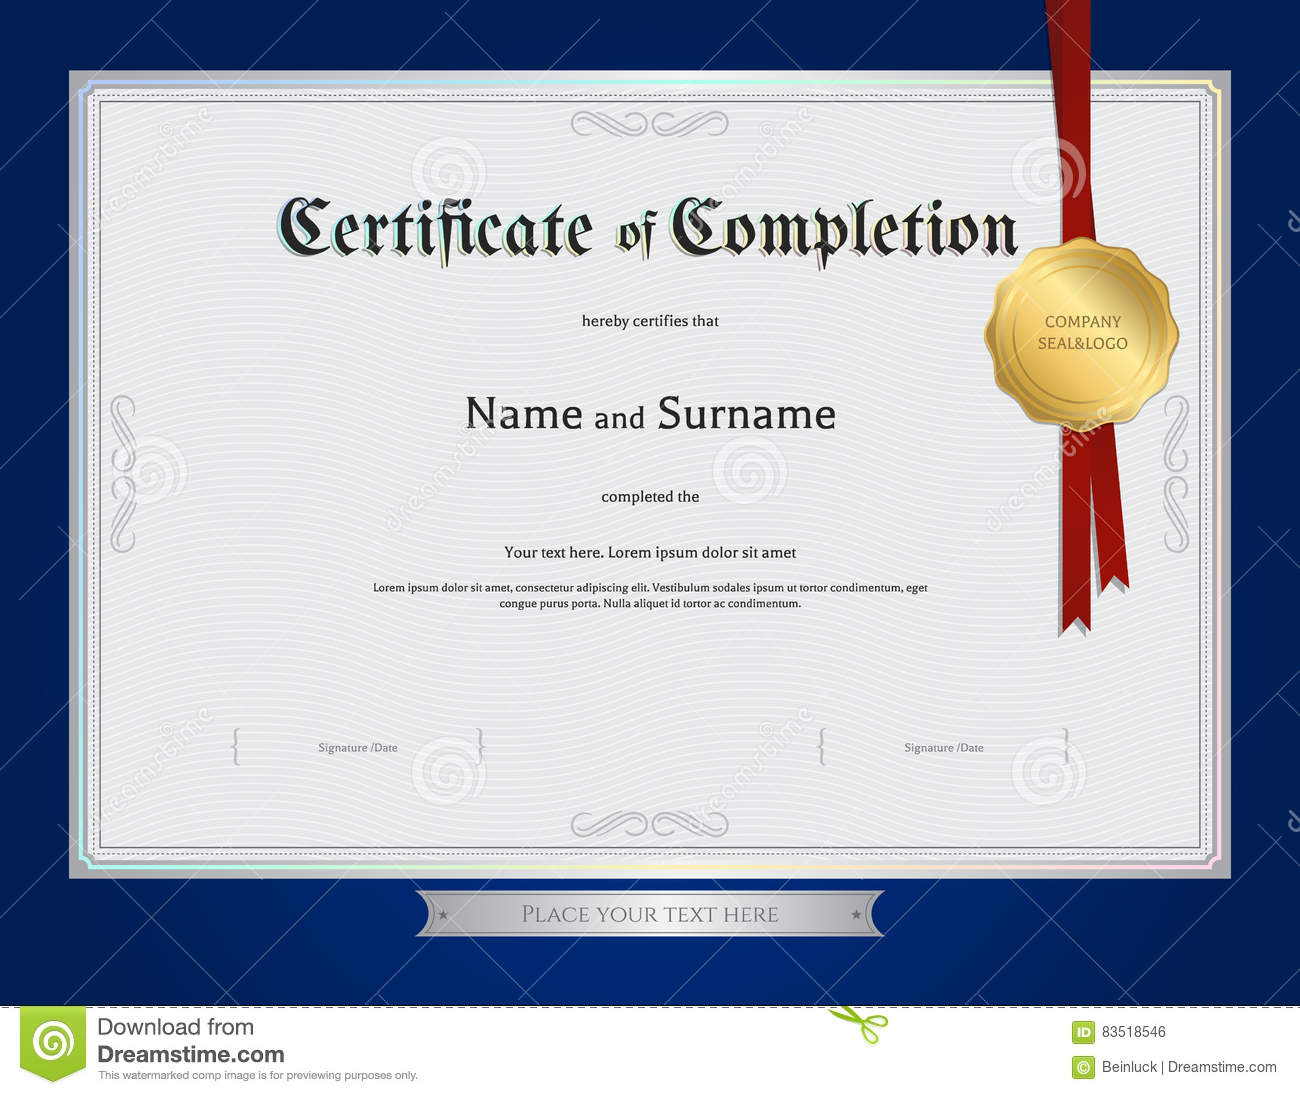 Certificate Of Completion Template With Blue Border Stock Vector Certificate  Completion Template Blue Border Red Award  Certificates Of Completion Templates